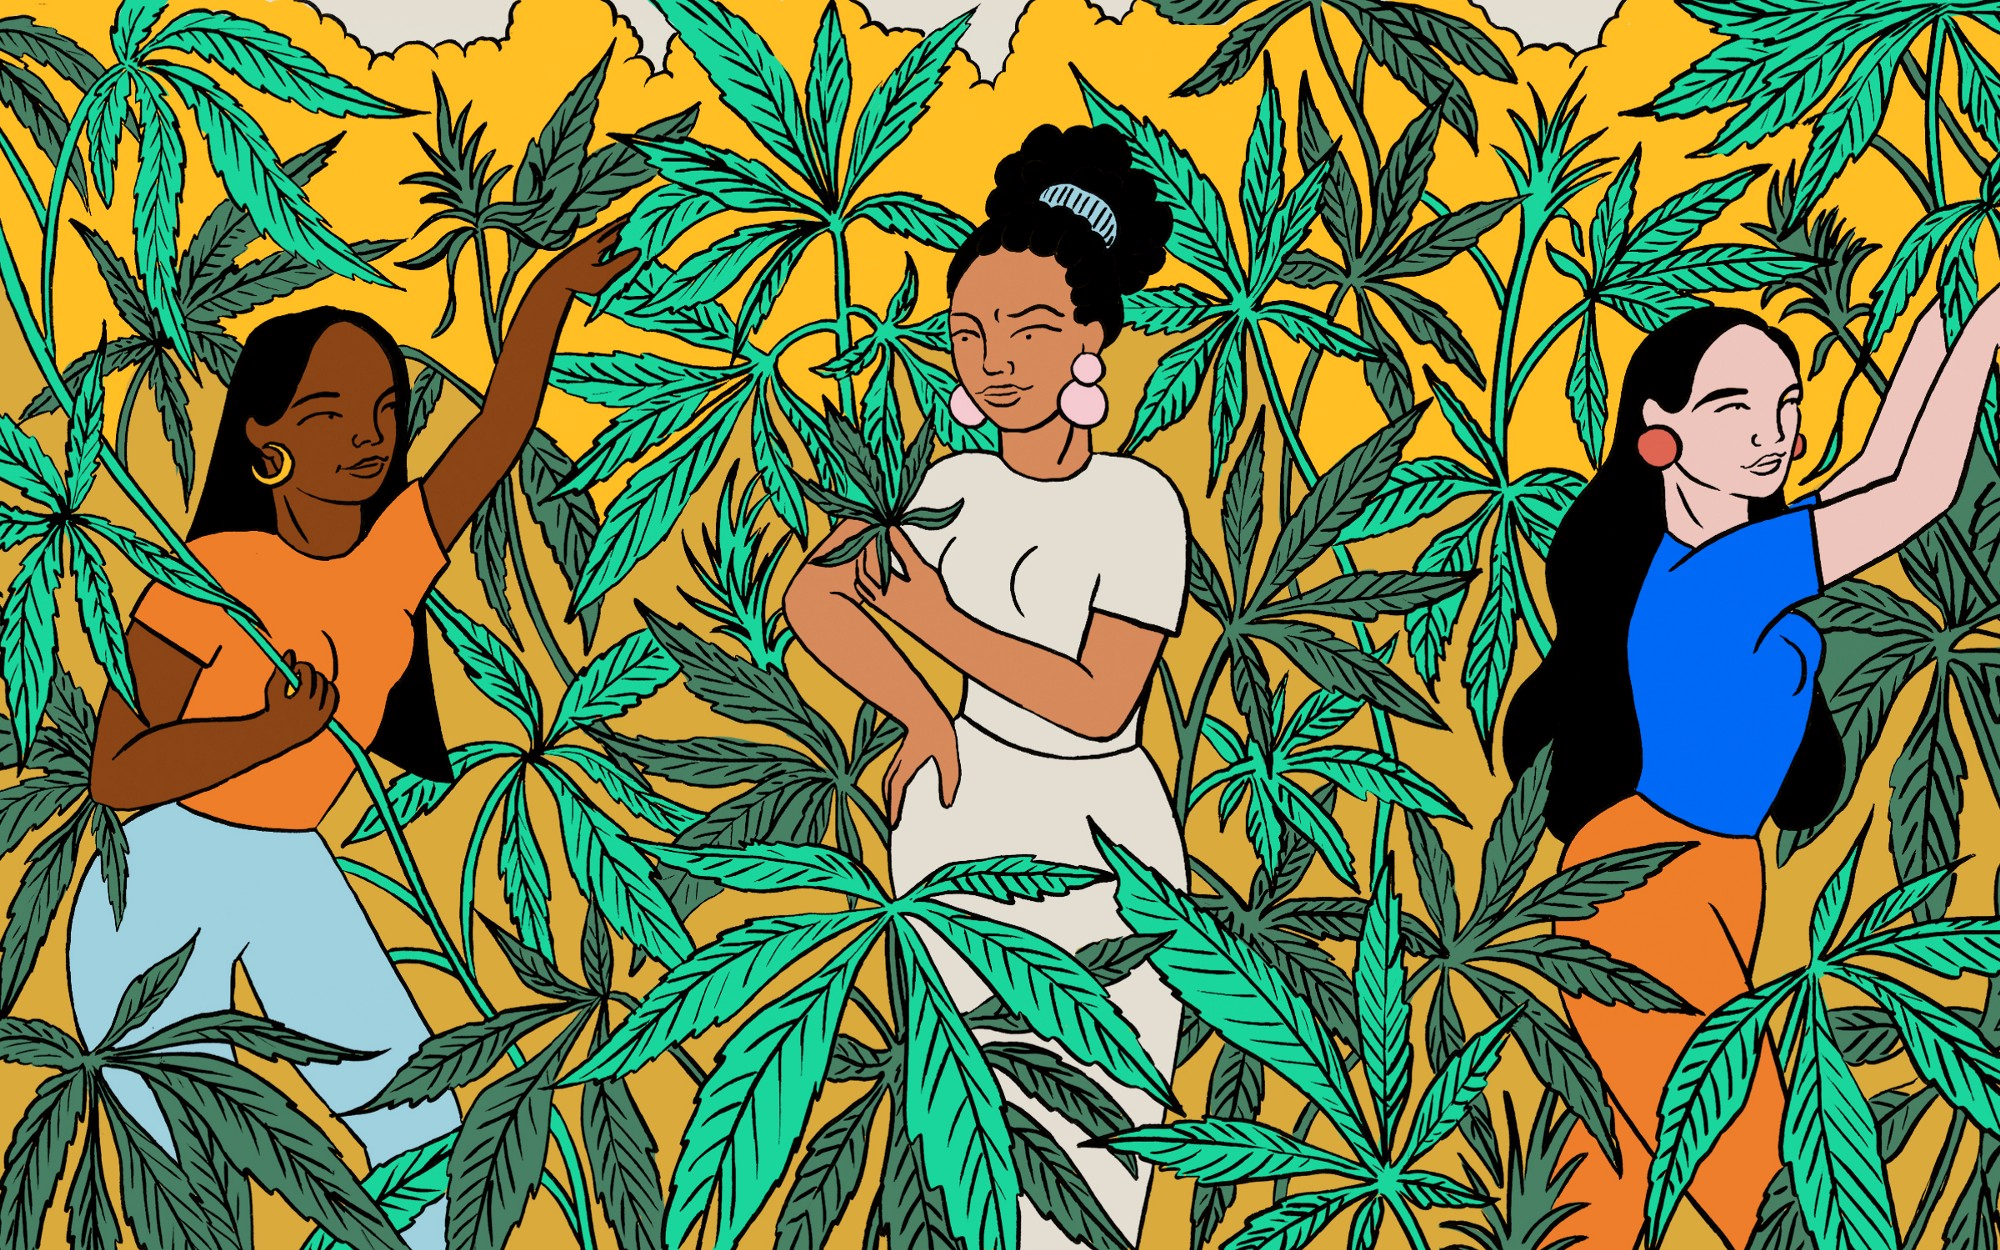 An illustration of three women surrounded by the cannabis plant all around them.